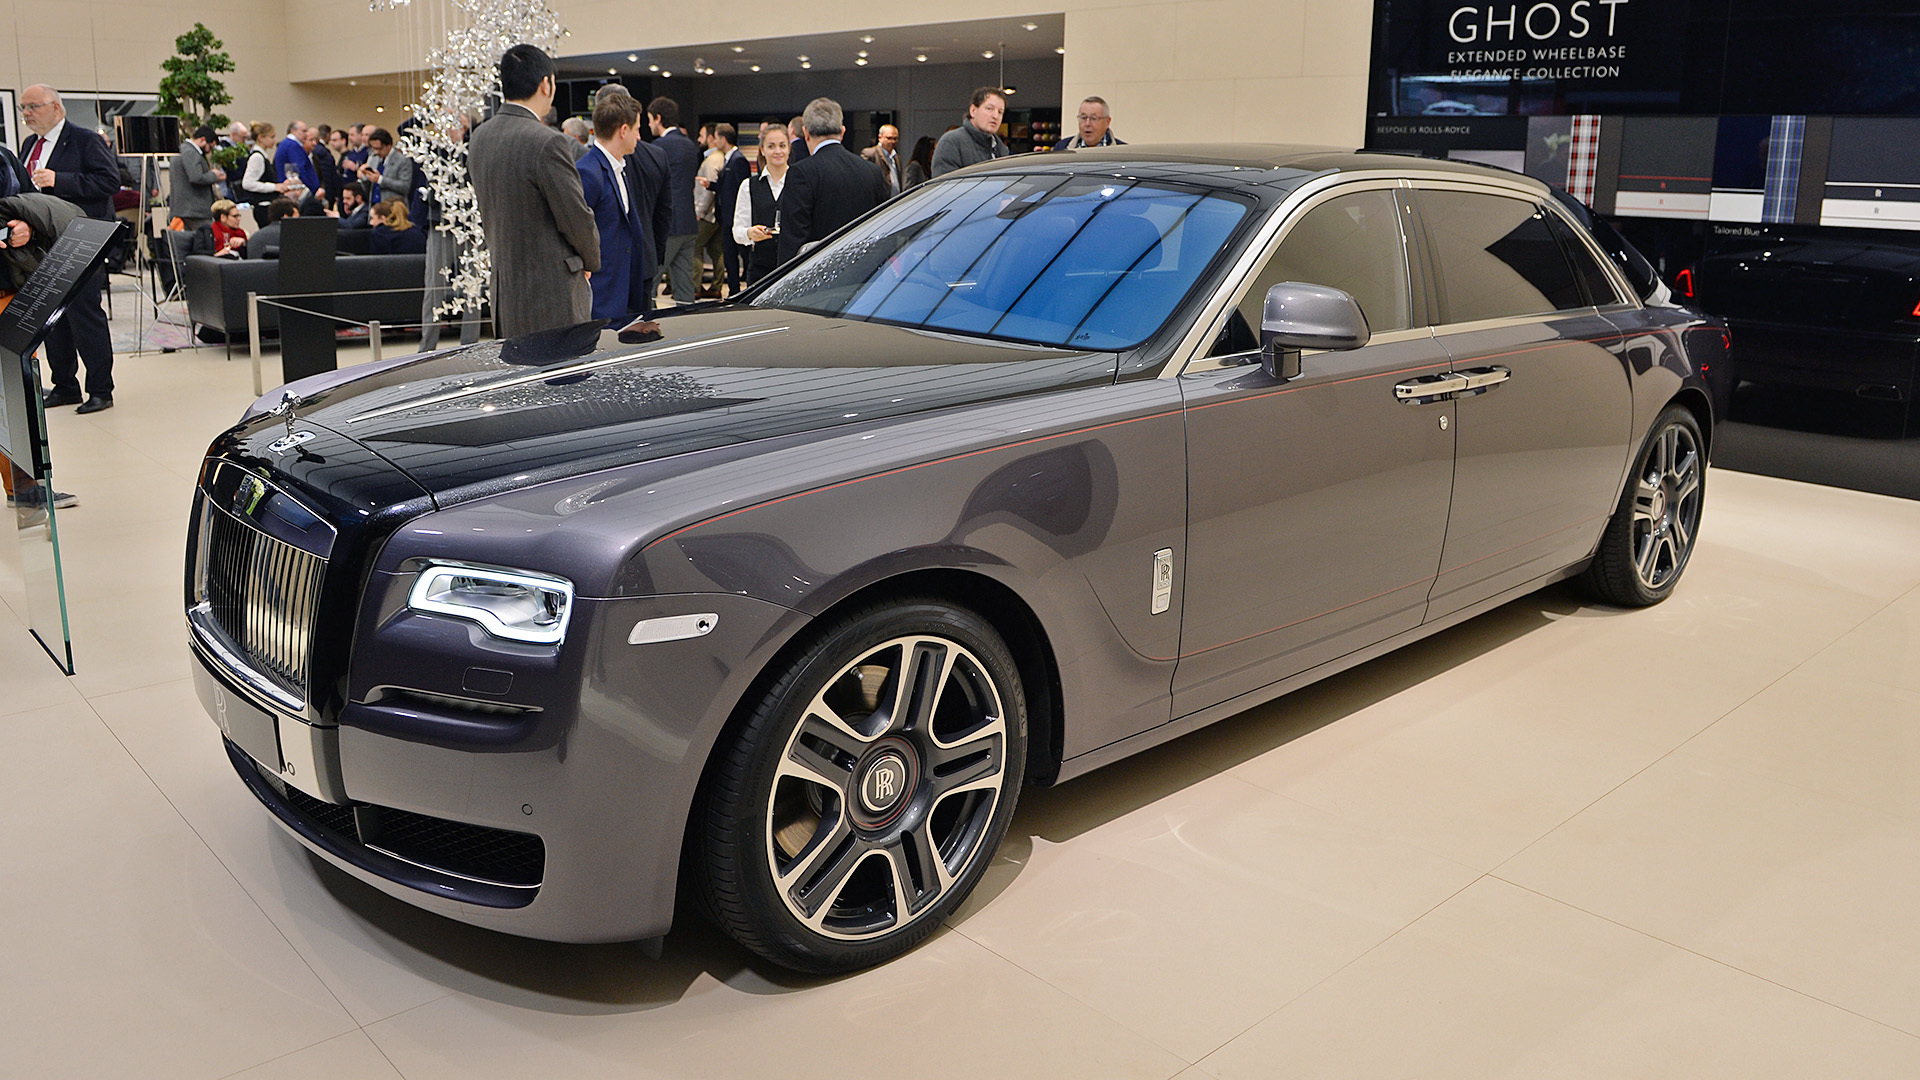 Rolls royce with photo - 8